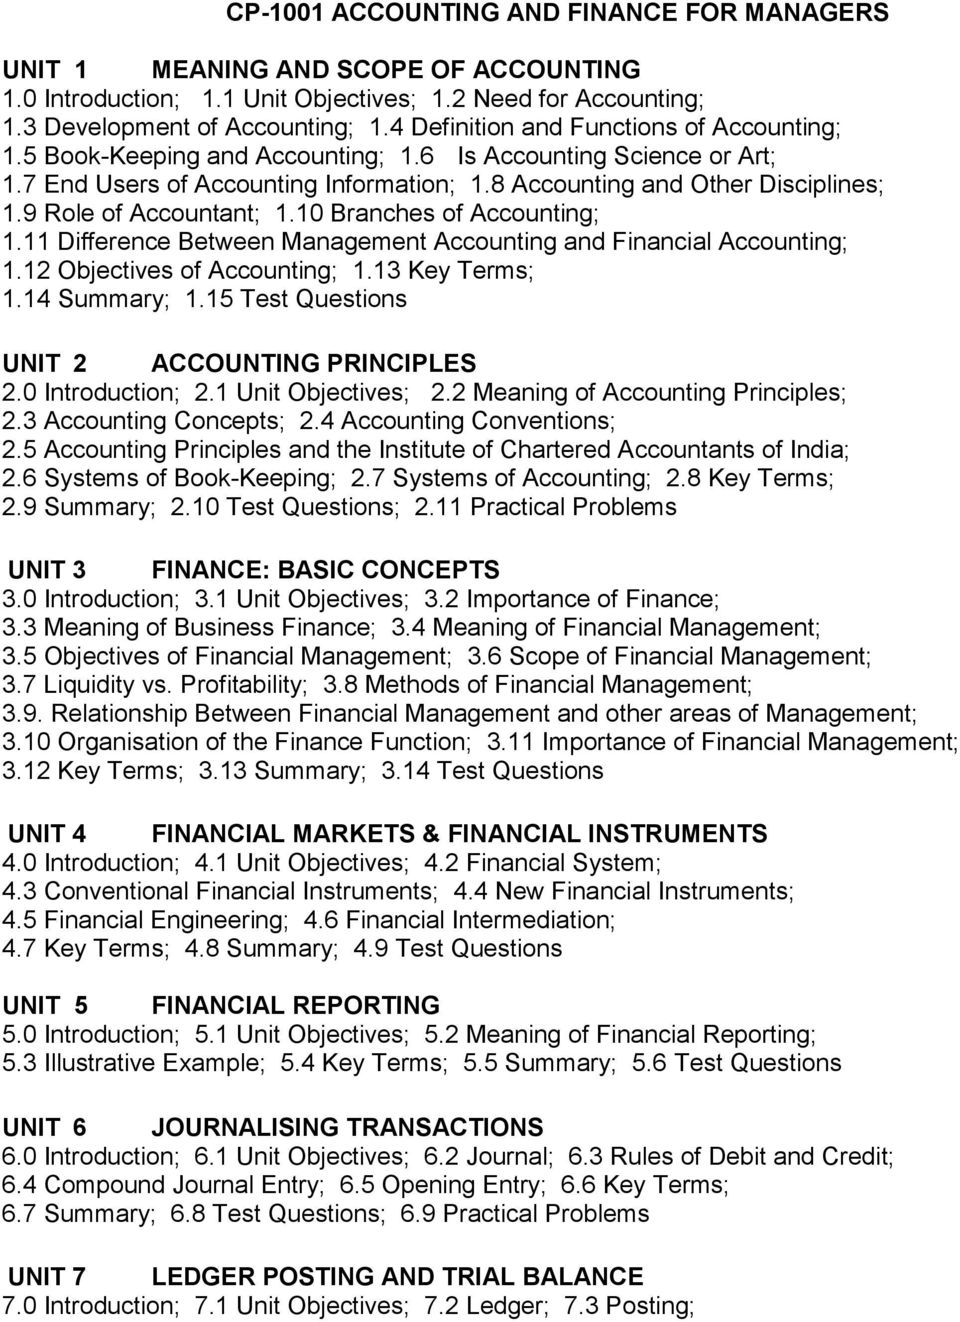 9 Role of Accountant; 1.10 Branches of Accounting; 1.11 Difference Between Management Accounting and Financial Accounting; 1.12 Objectives of Accounting; 1.13 Key Terms; 1.14 Summary; 1.